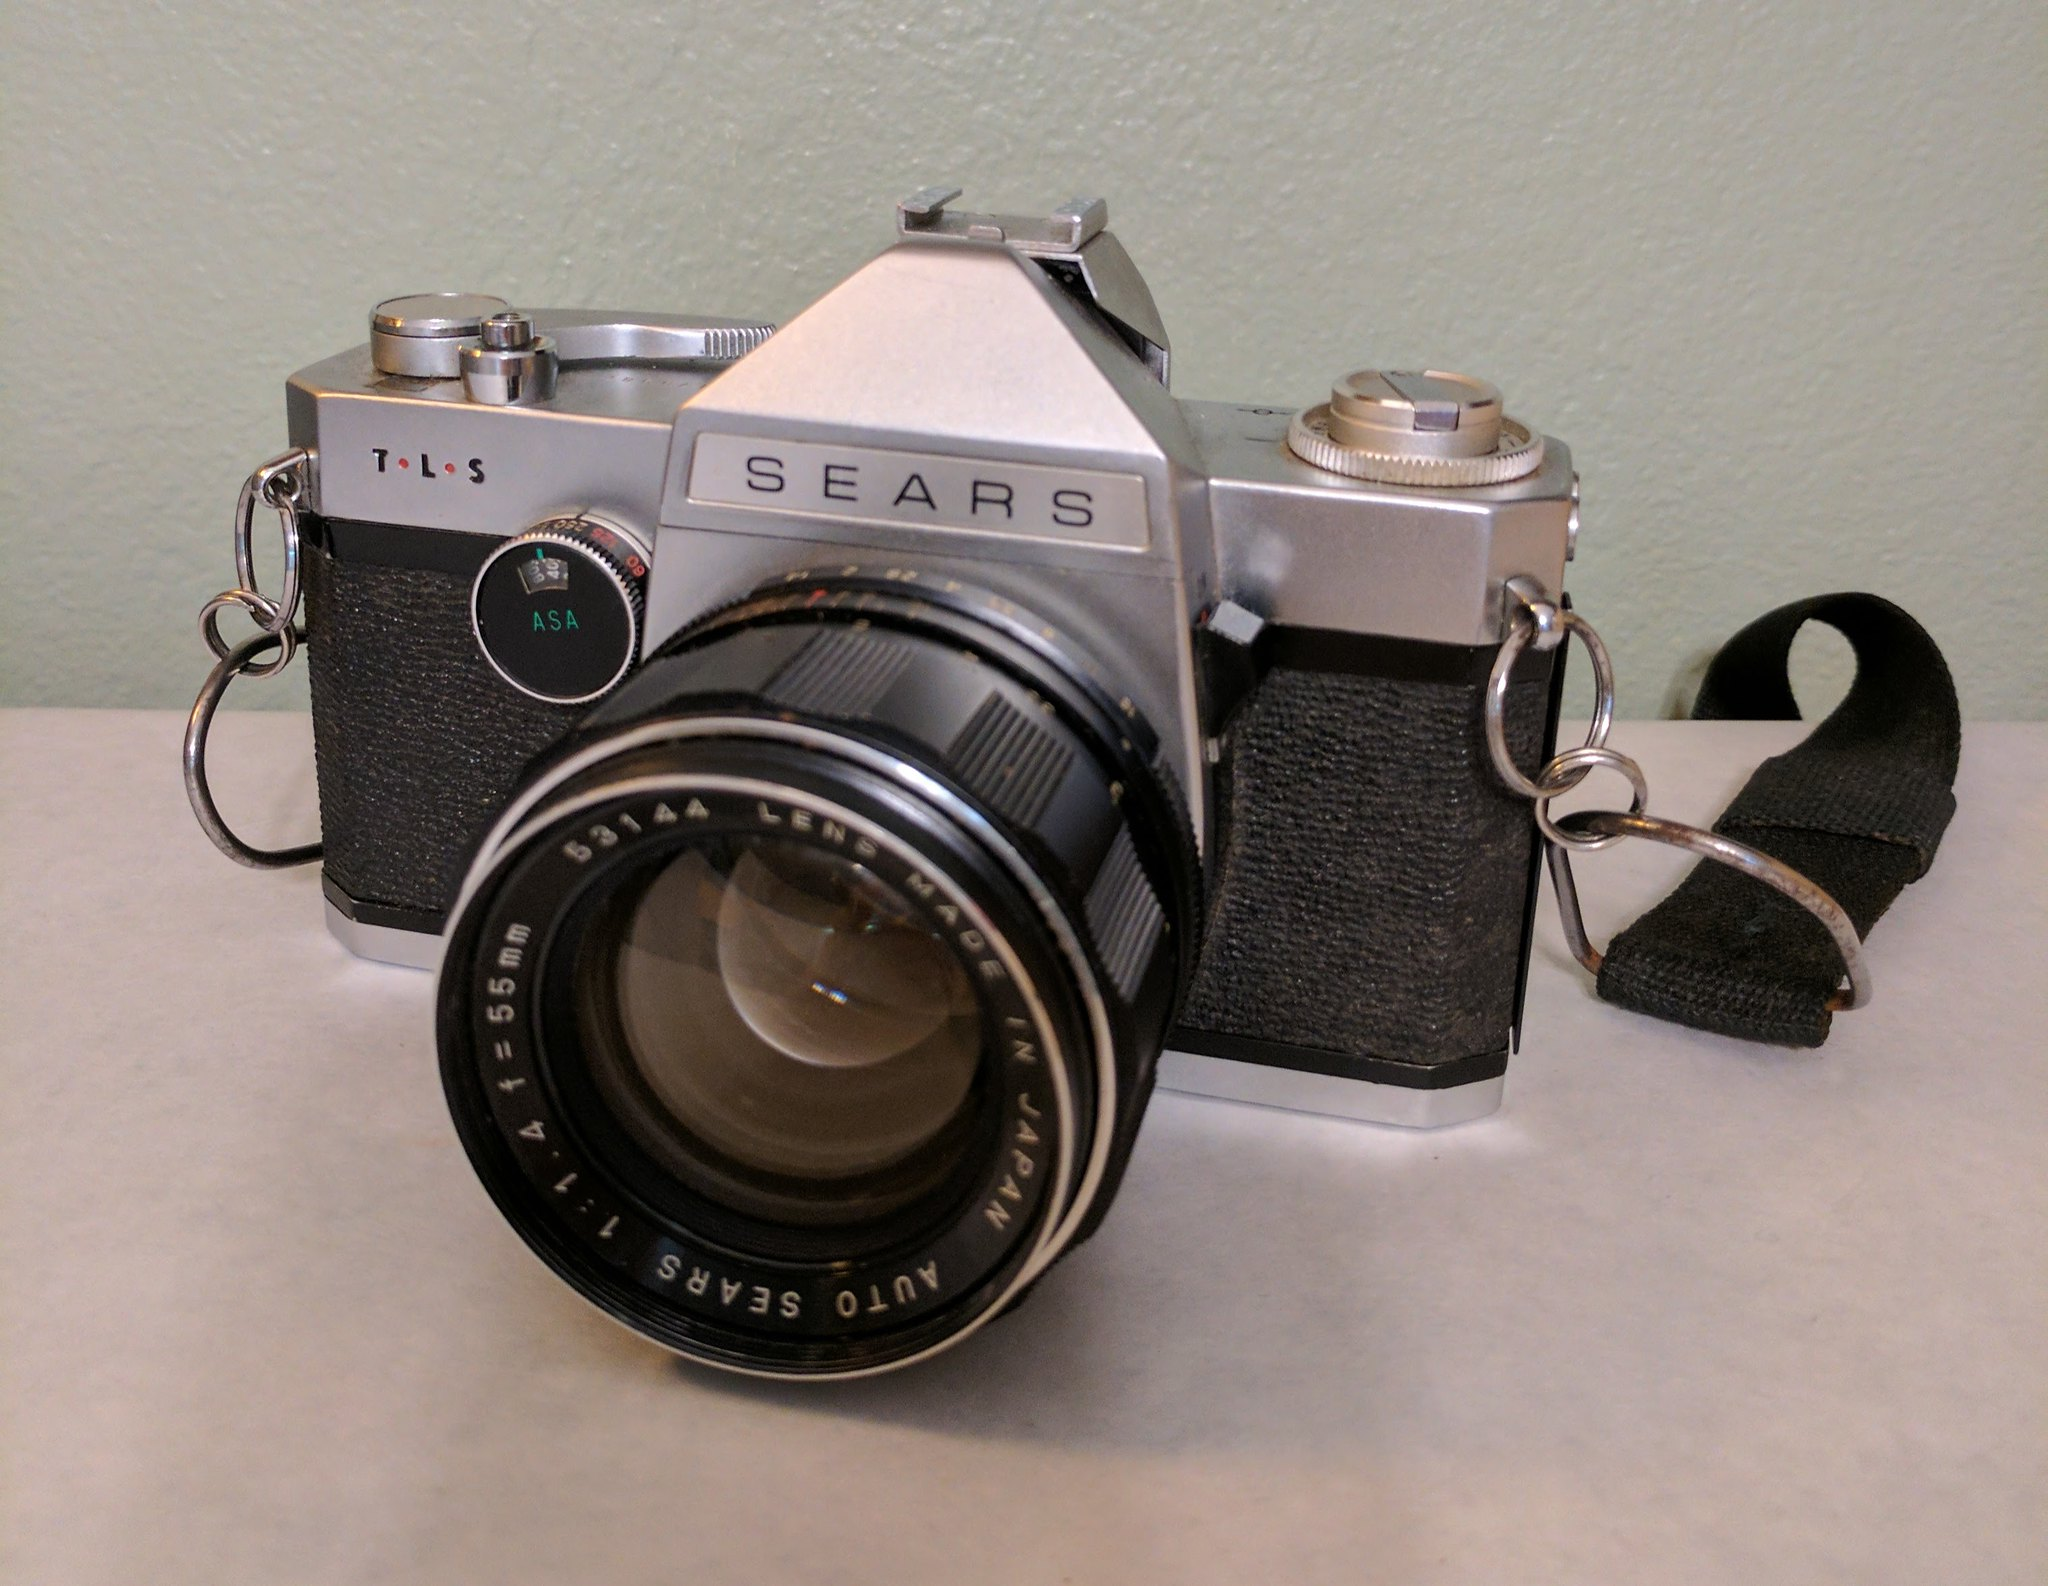 Sears TLS SLR Camera Made by Ricoh